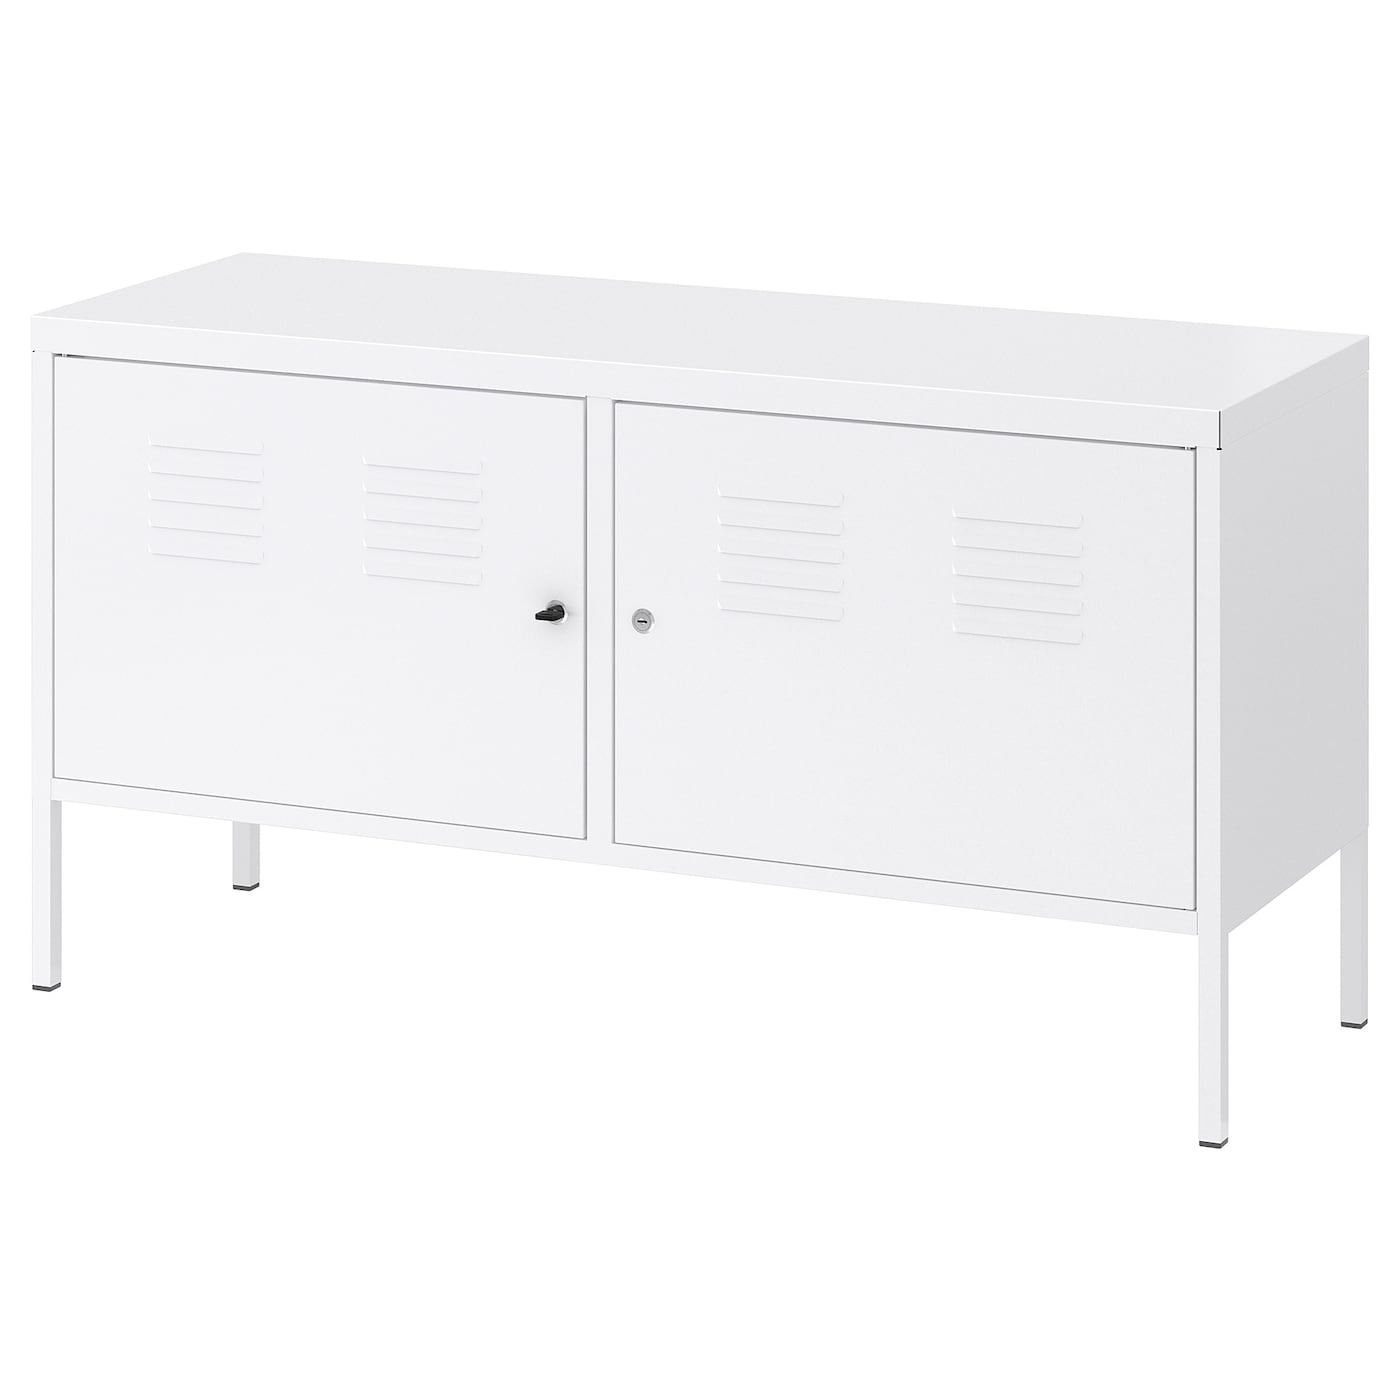 IKEA IKEA PS cabinet A cord outlet underneath makes it easy to gather all cords in one place.